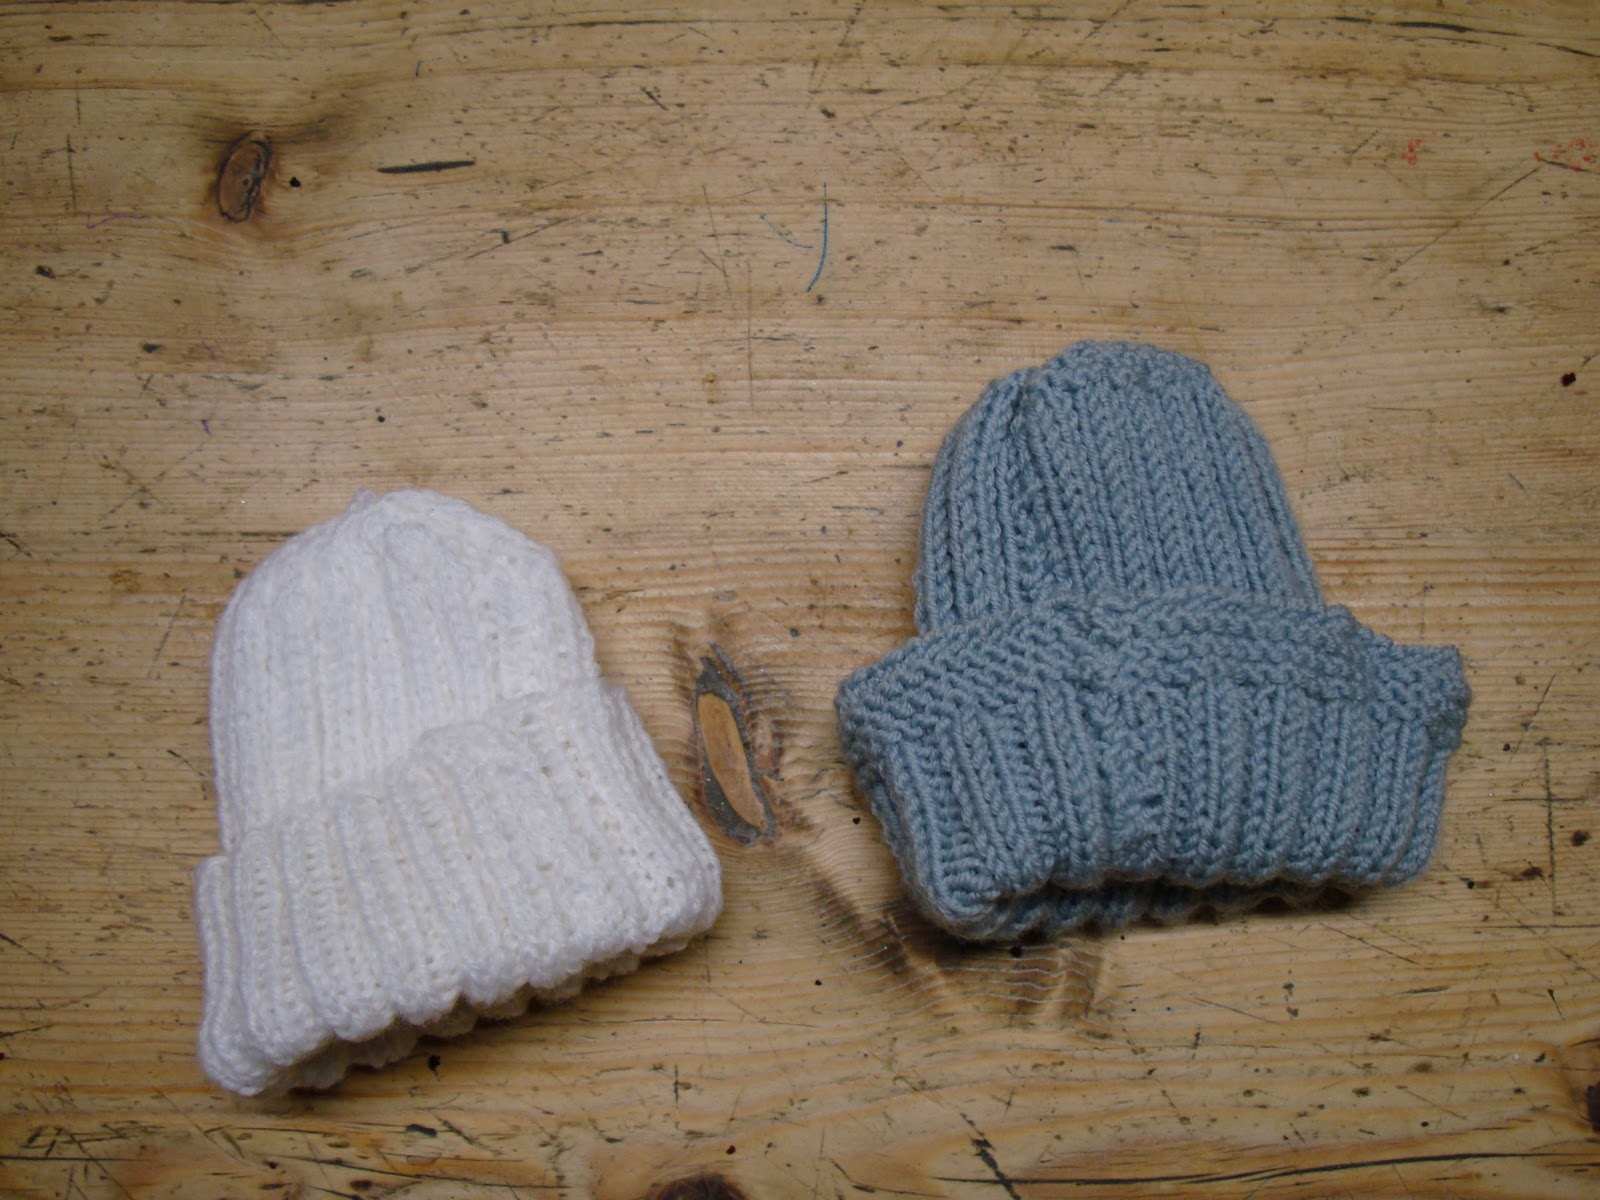 Knit a hat for a premature baby